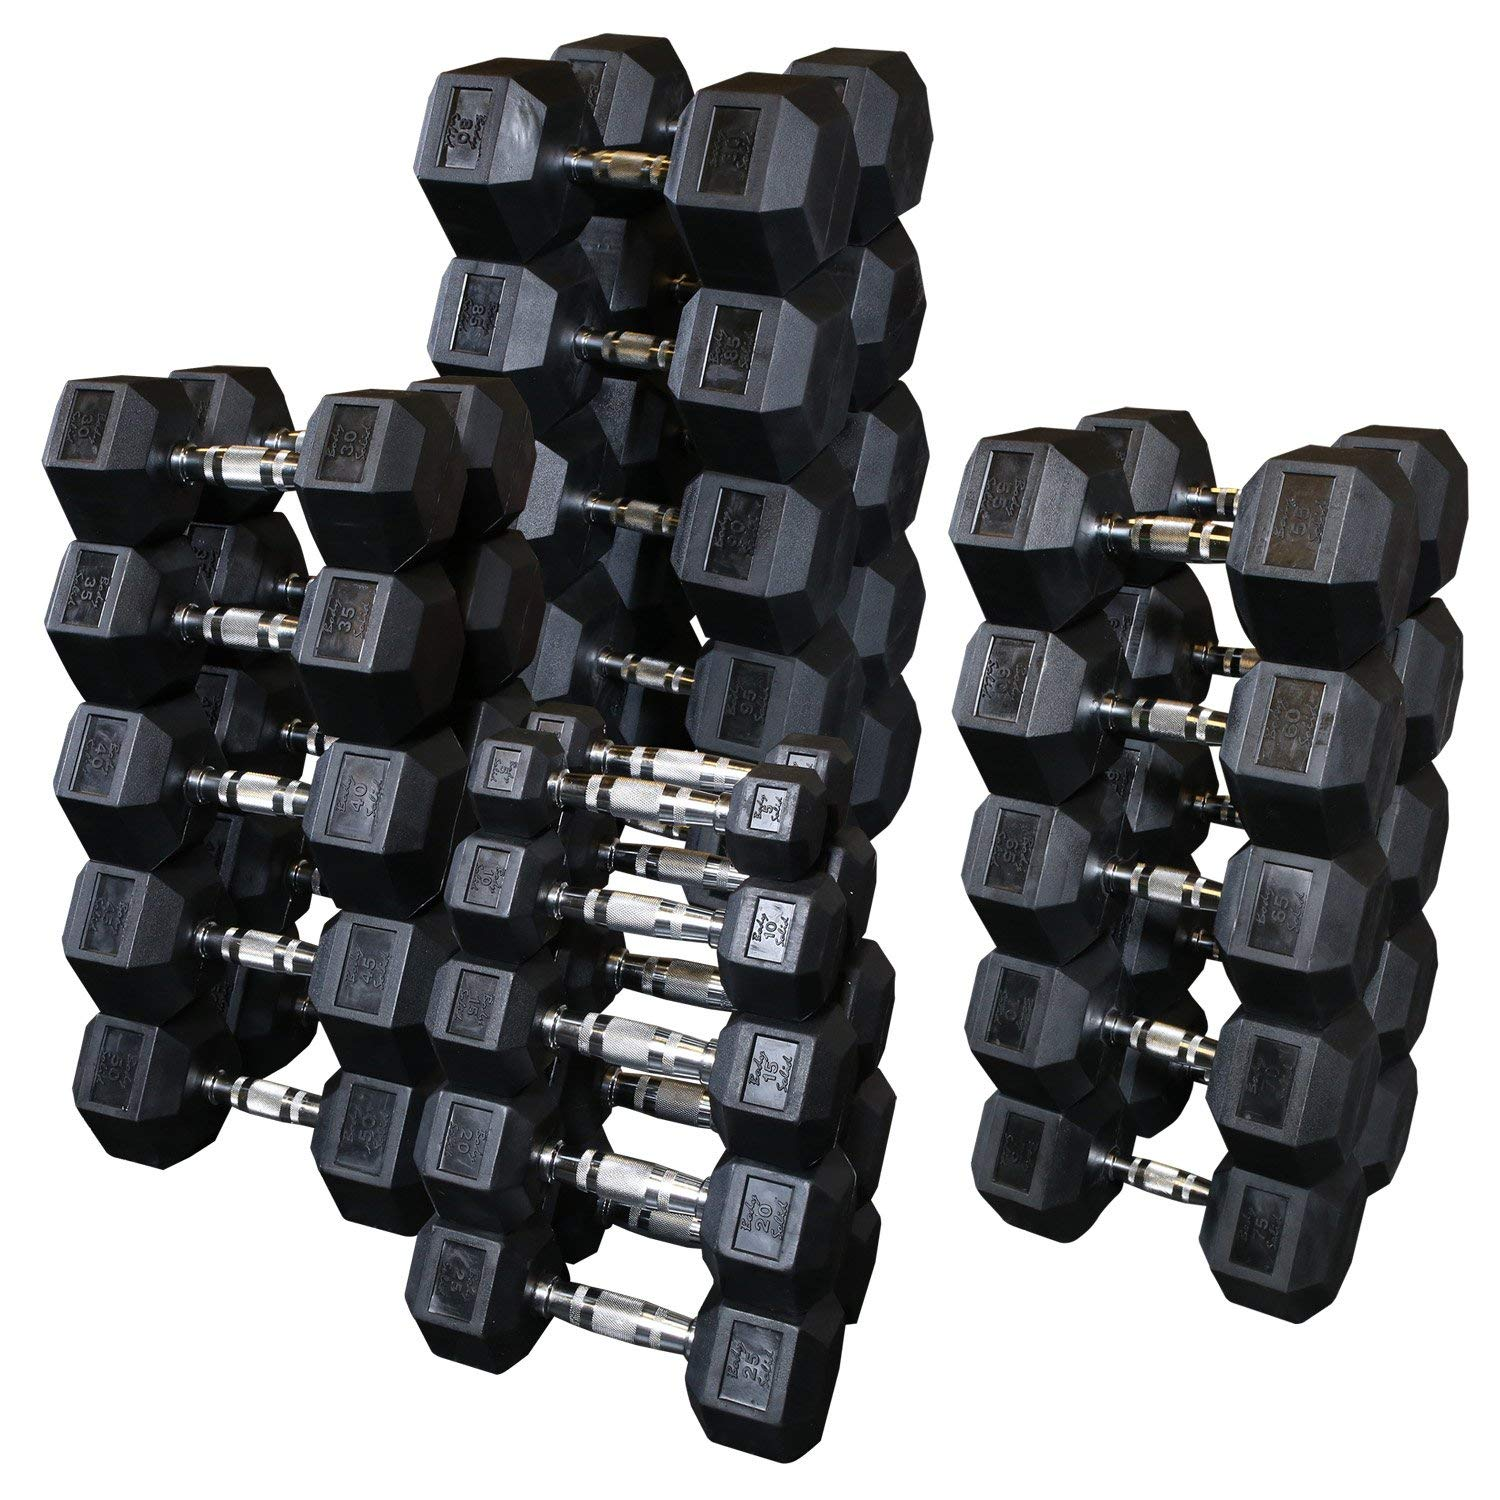 Commercial 5-100lb Rubber Hex Dumbbell Set with Contoured Handles